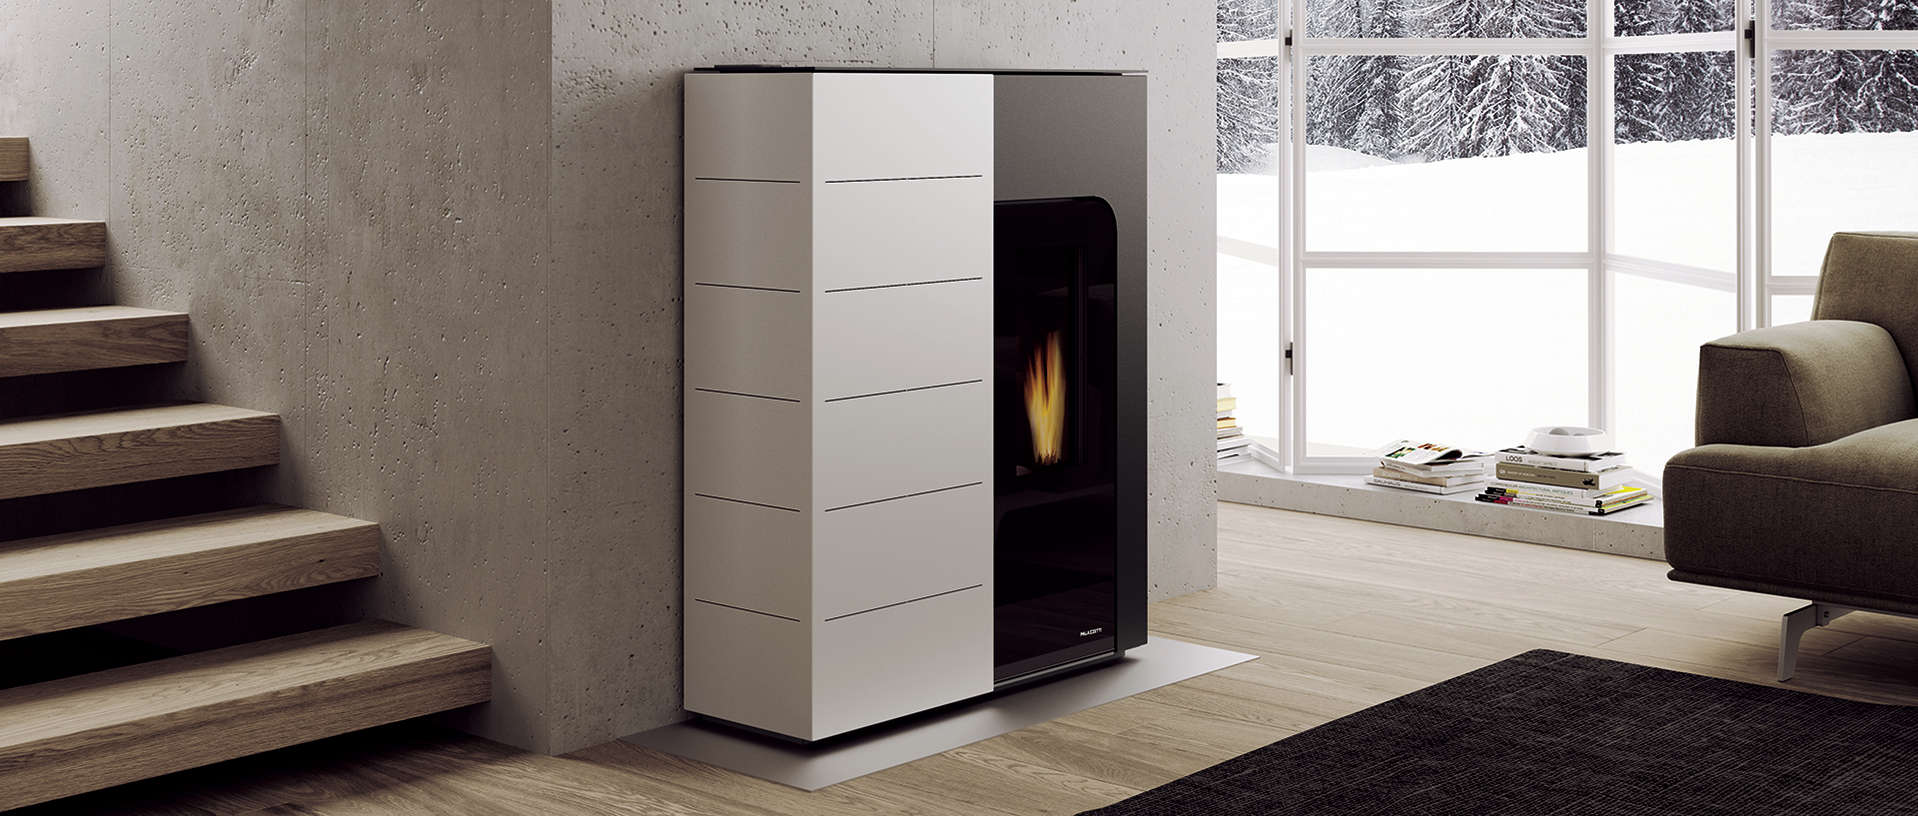 Wood Pellet Central Heating Stove